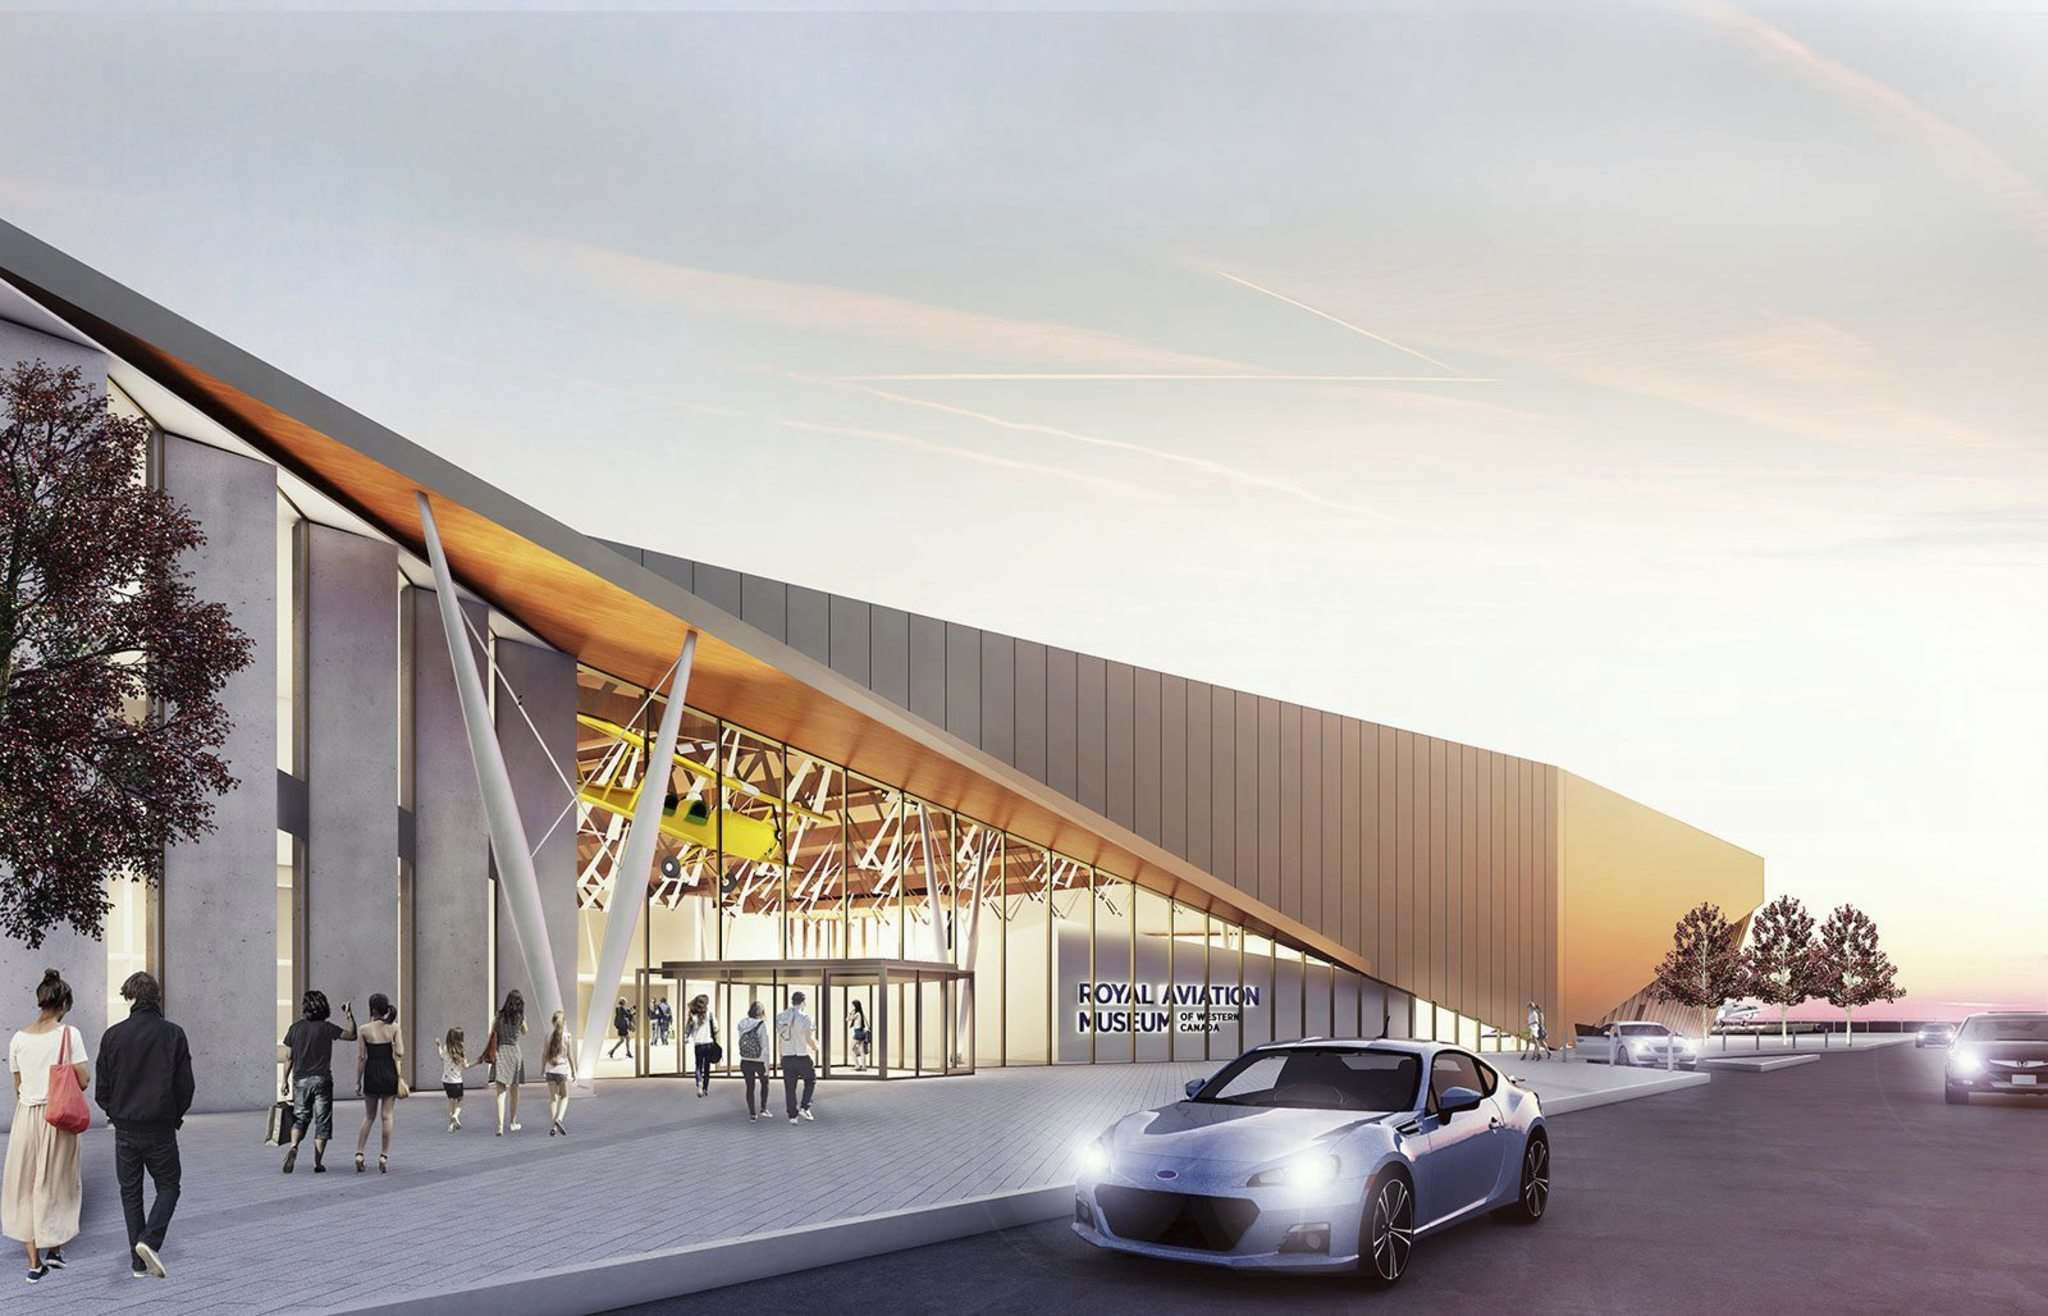 Supplied</p><p>An artist's rendering of the Royal Aviation Museum of Western Canada. The museum is set to open in 2021 and construction at the Wellington Avenue location is expected to begin soon.</p></p>